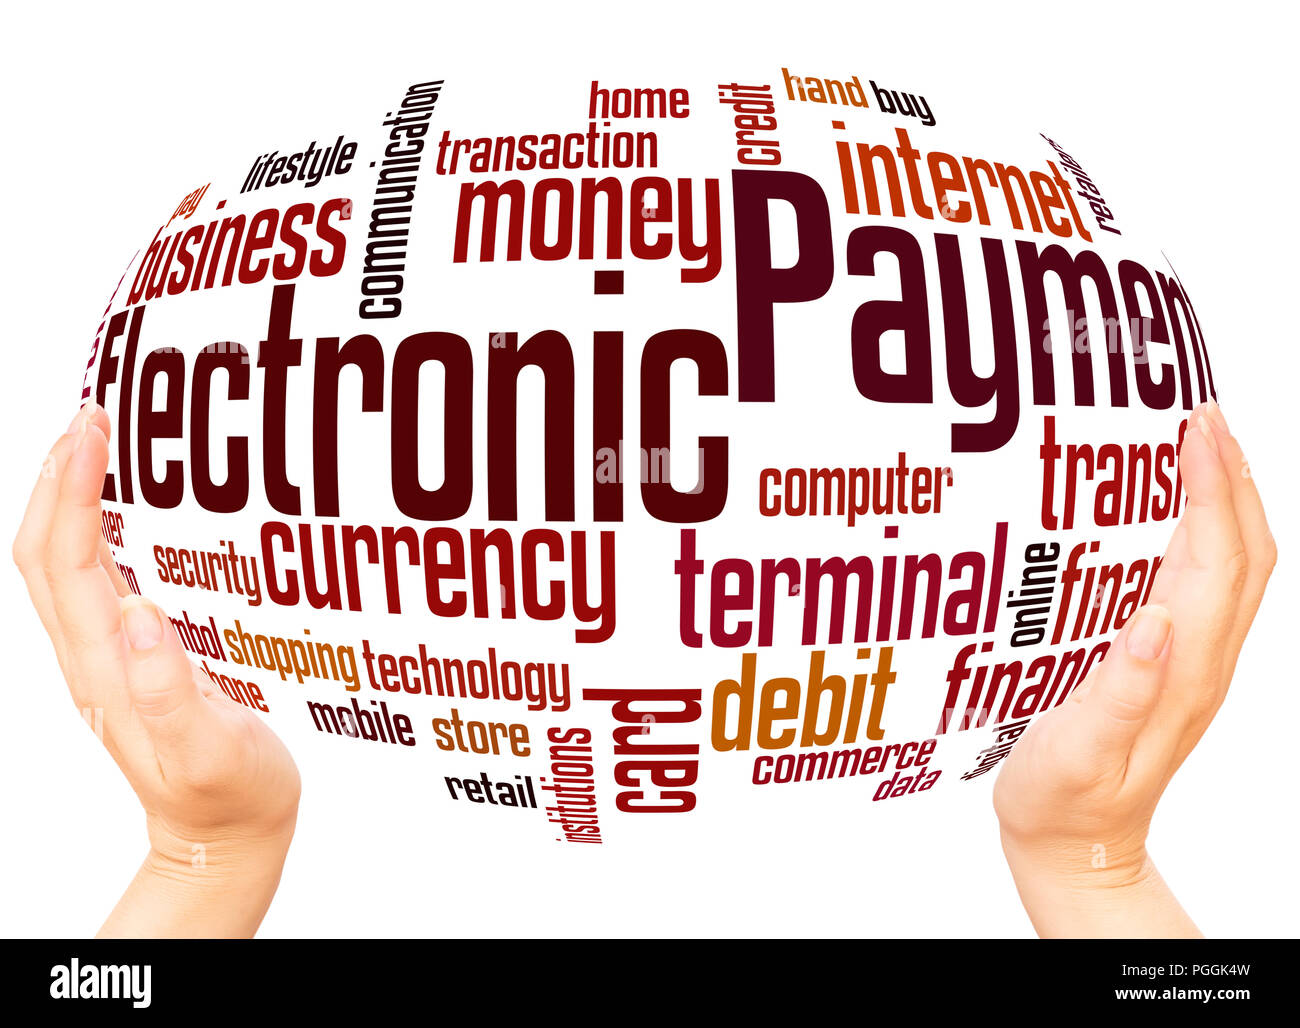 Electronic payment word cloud hand sphere concept on white background. - Stock Image